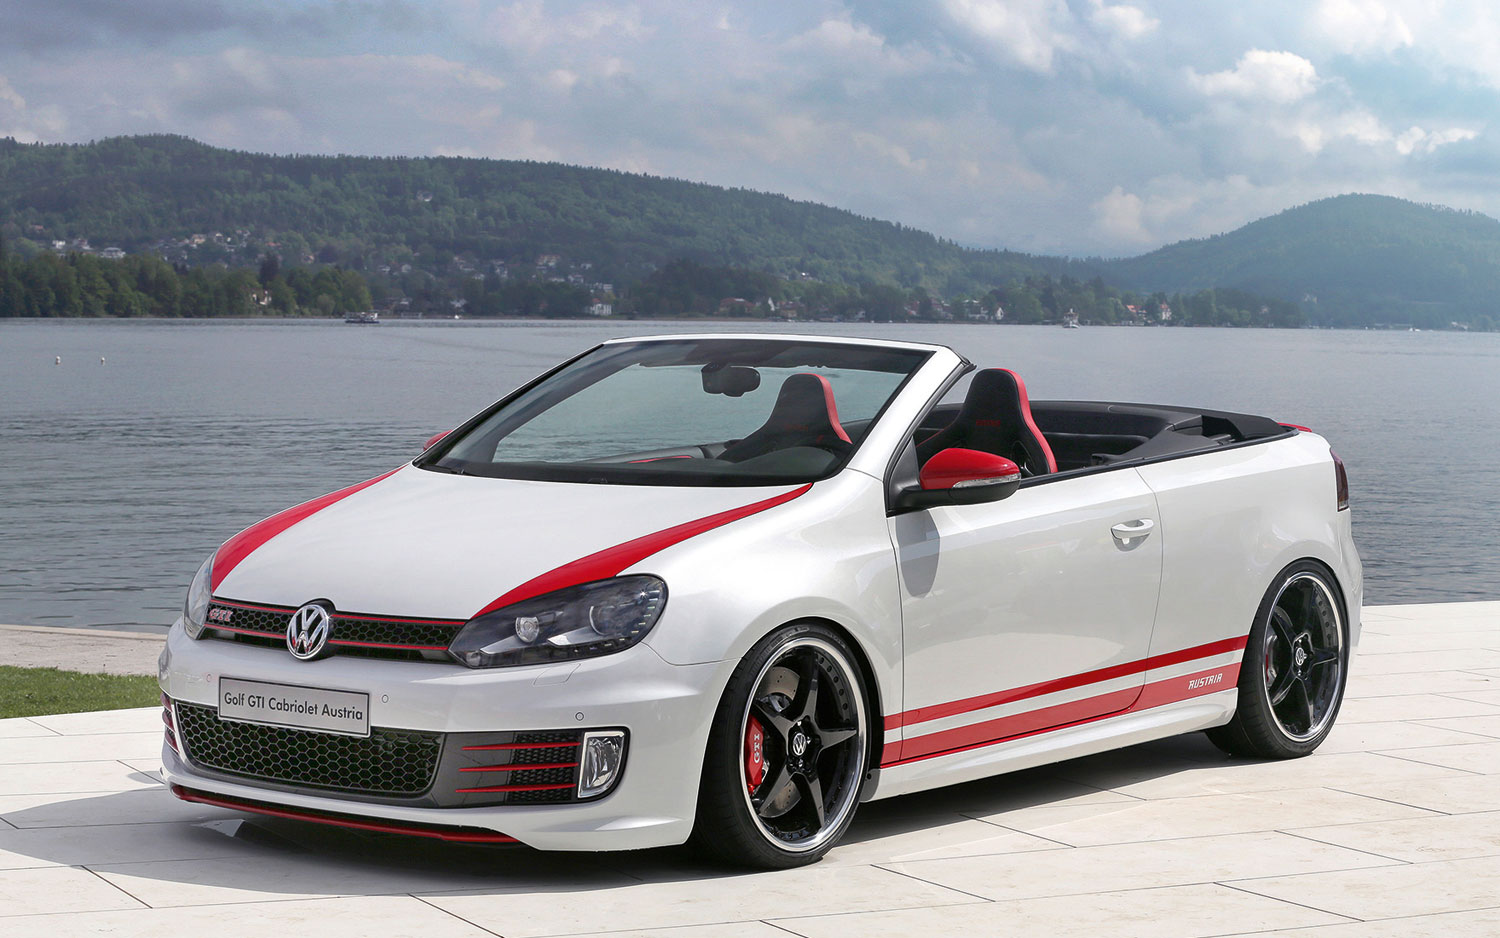 Auto and Cycle 328 HP Volkswagen GTI Cabrio Concept Unveiled at Worthersee.  Article by Edward A. Sanchez posted May 11, 2013